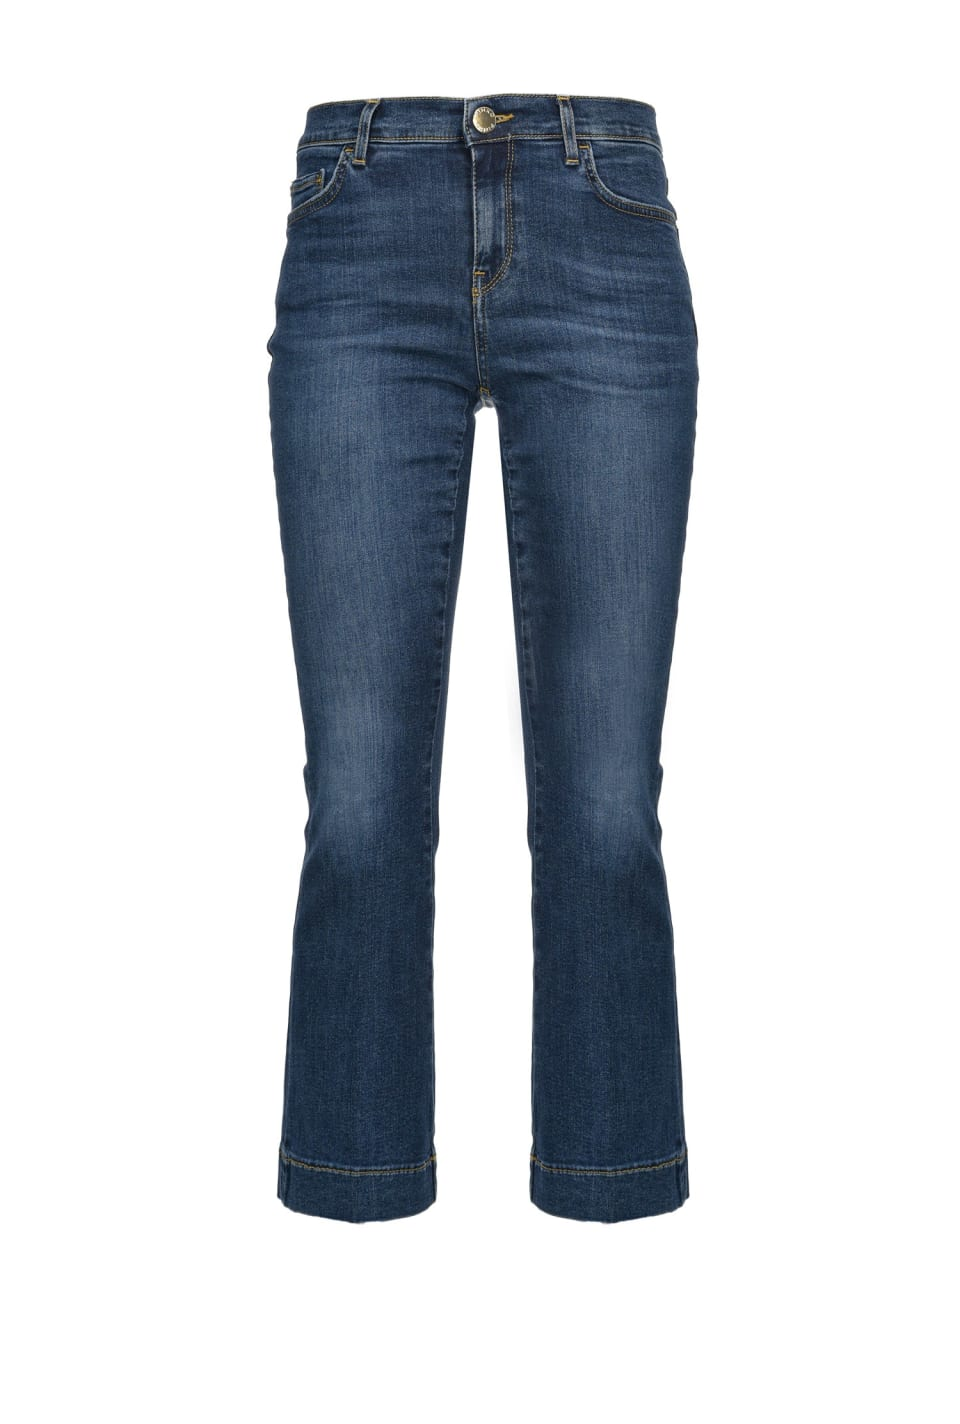 Flare-Fit-Jeans aus Stretch-Twilldenim - Pinko